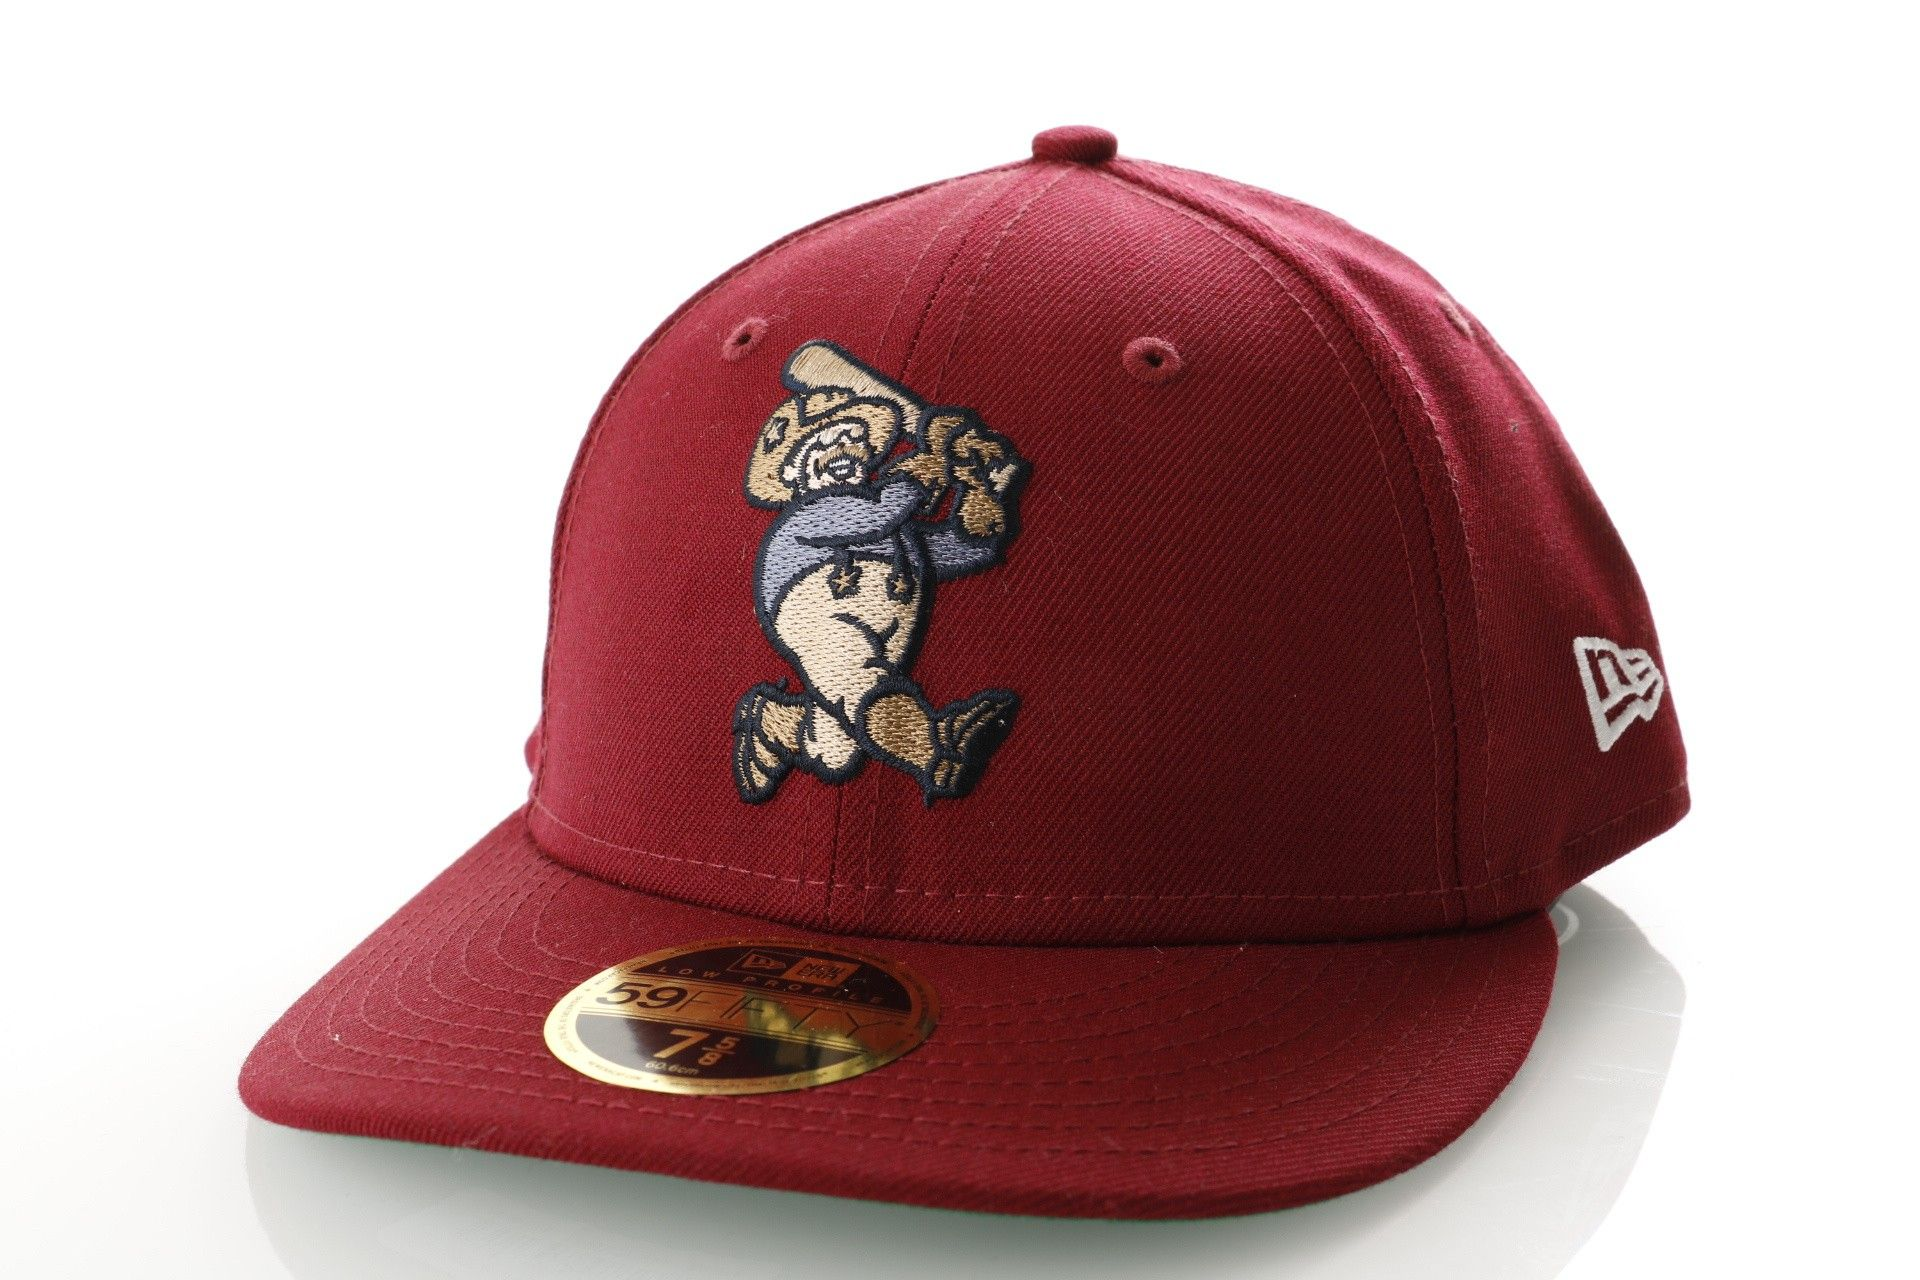 New Era Fitted Cap FRISCO ROUGH RIDERS MILB LP 59fifty FRISCO ROUGH RIDERS 11794662